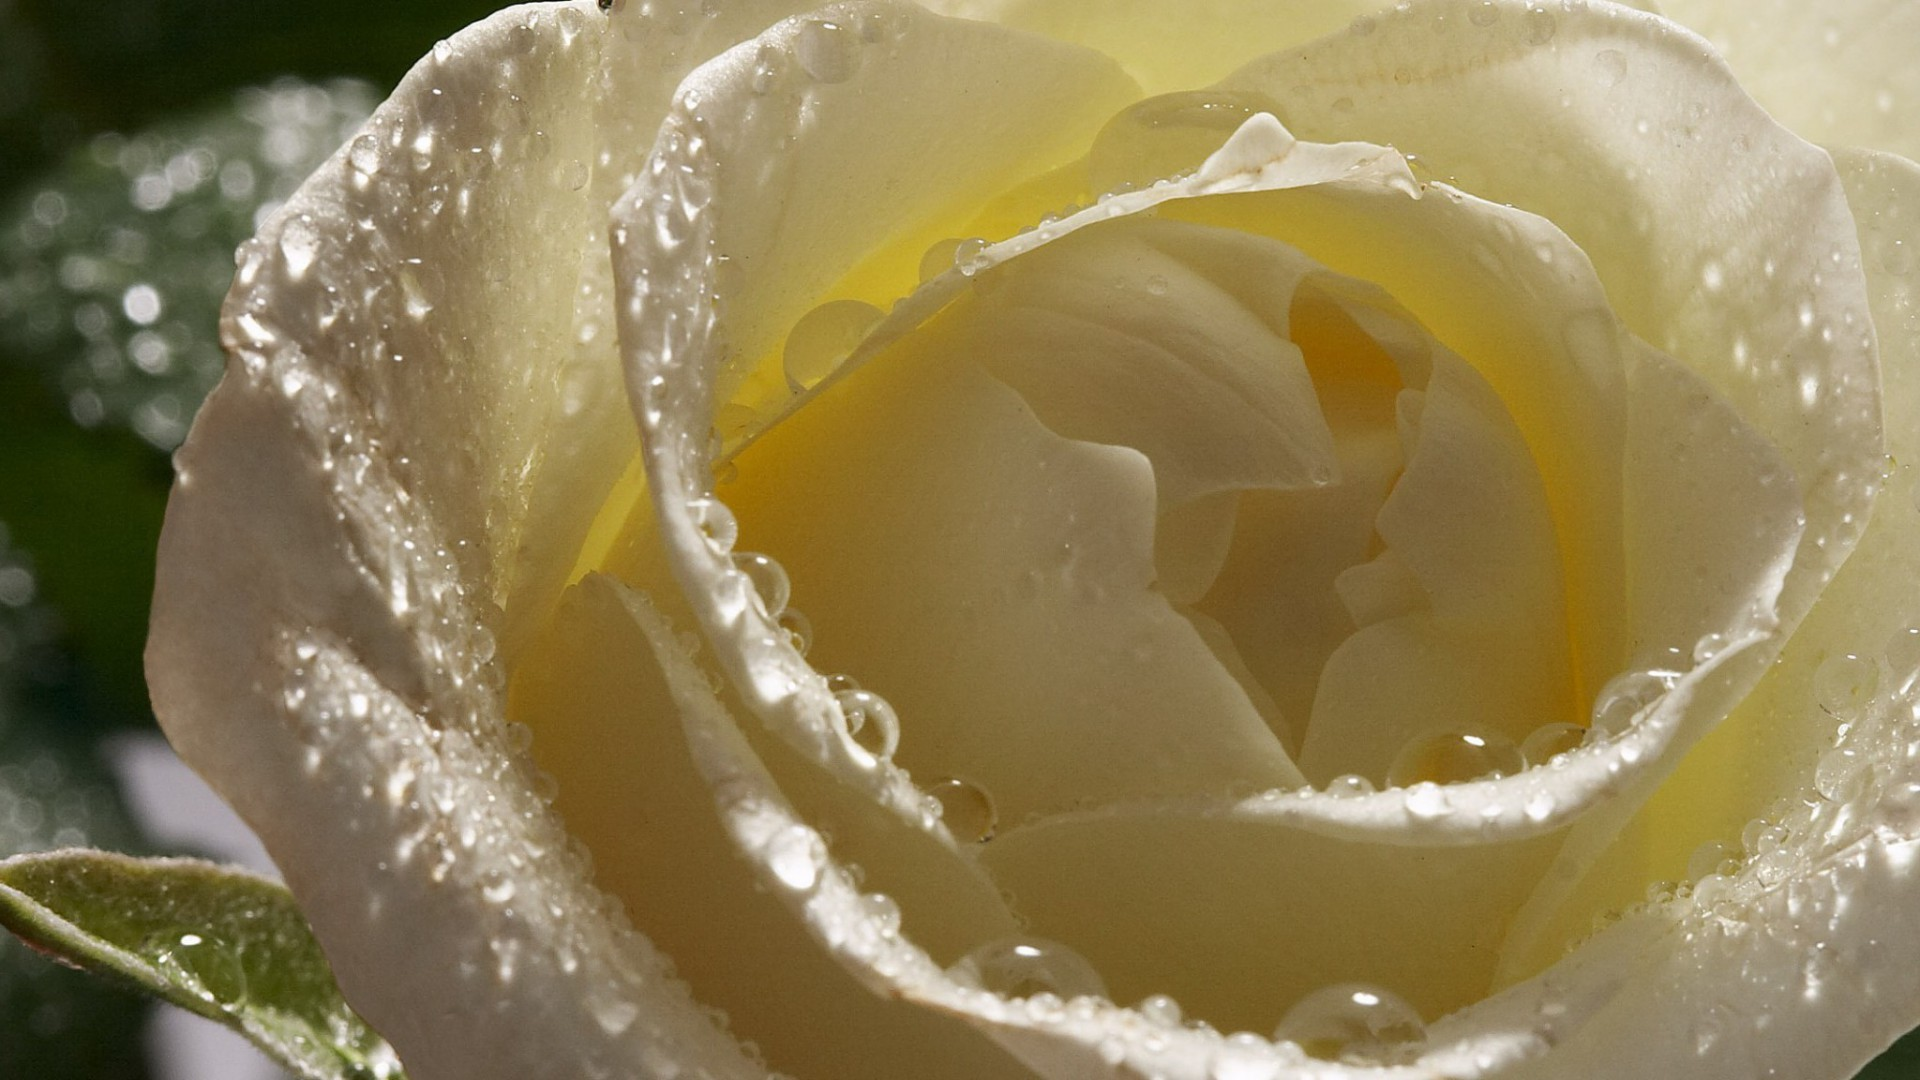 Wet white rose closeup wallpapers and images - wallpapers, pictures ...